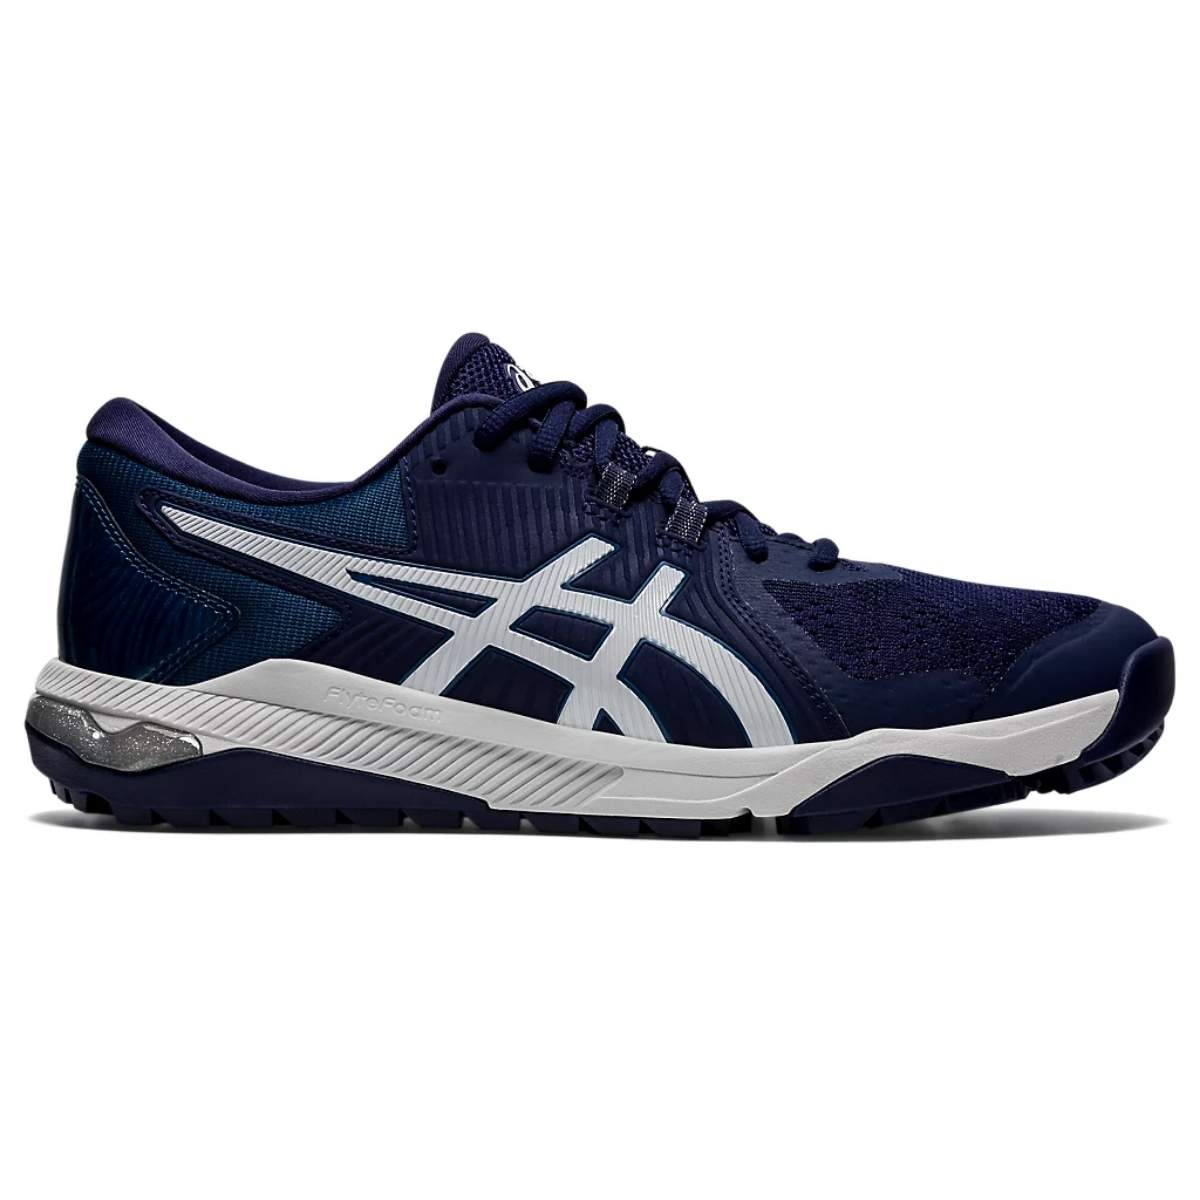 Asics Men's Gel Glide Golf Shoe - Peacoat